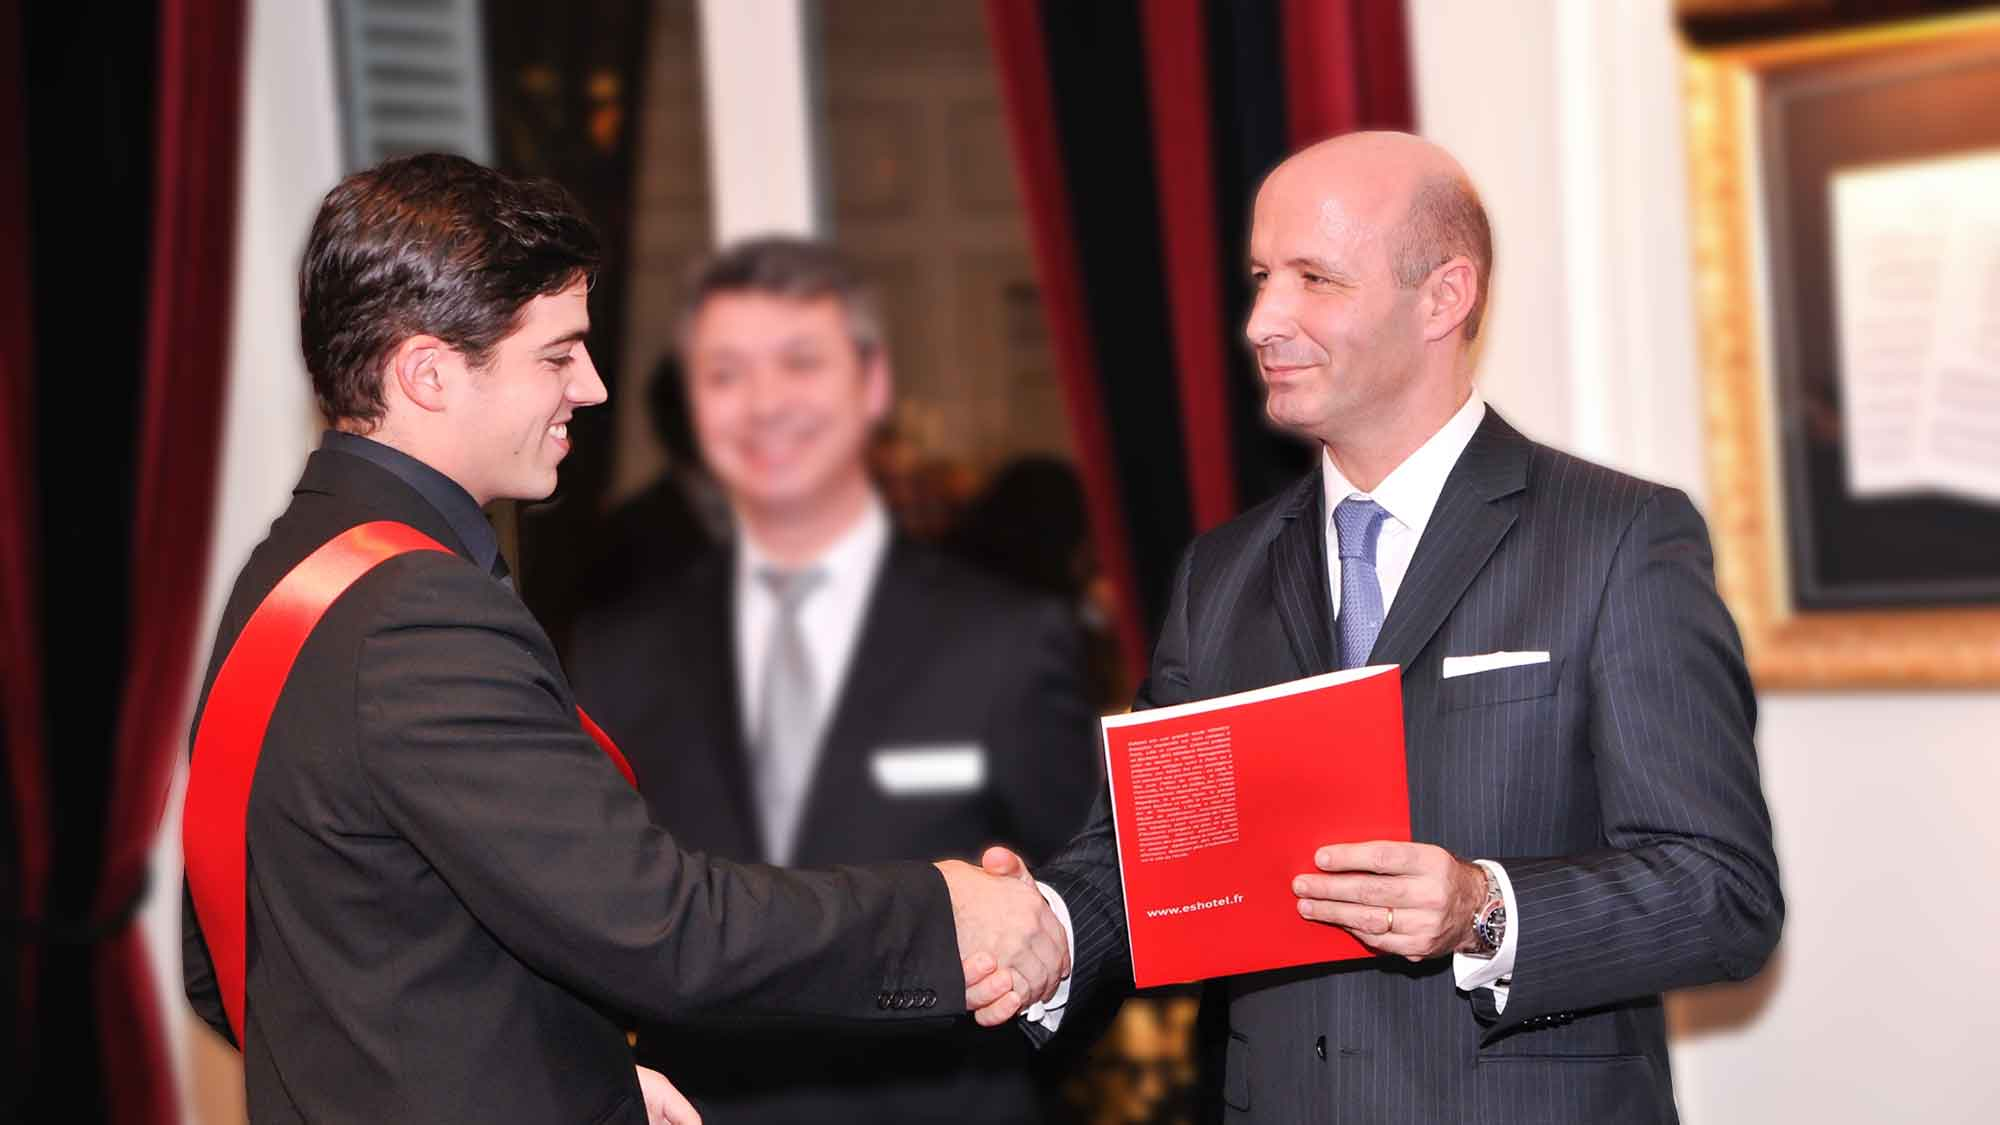 Christophe Laure, General Manager of InterContinental Paris, Le Grand Hotel, shakes hands with a Master's student and is preparing to hand over his degree.